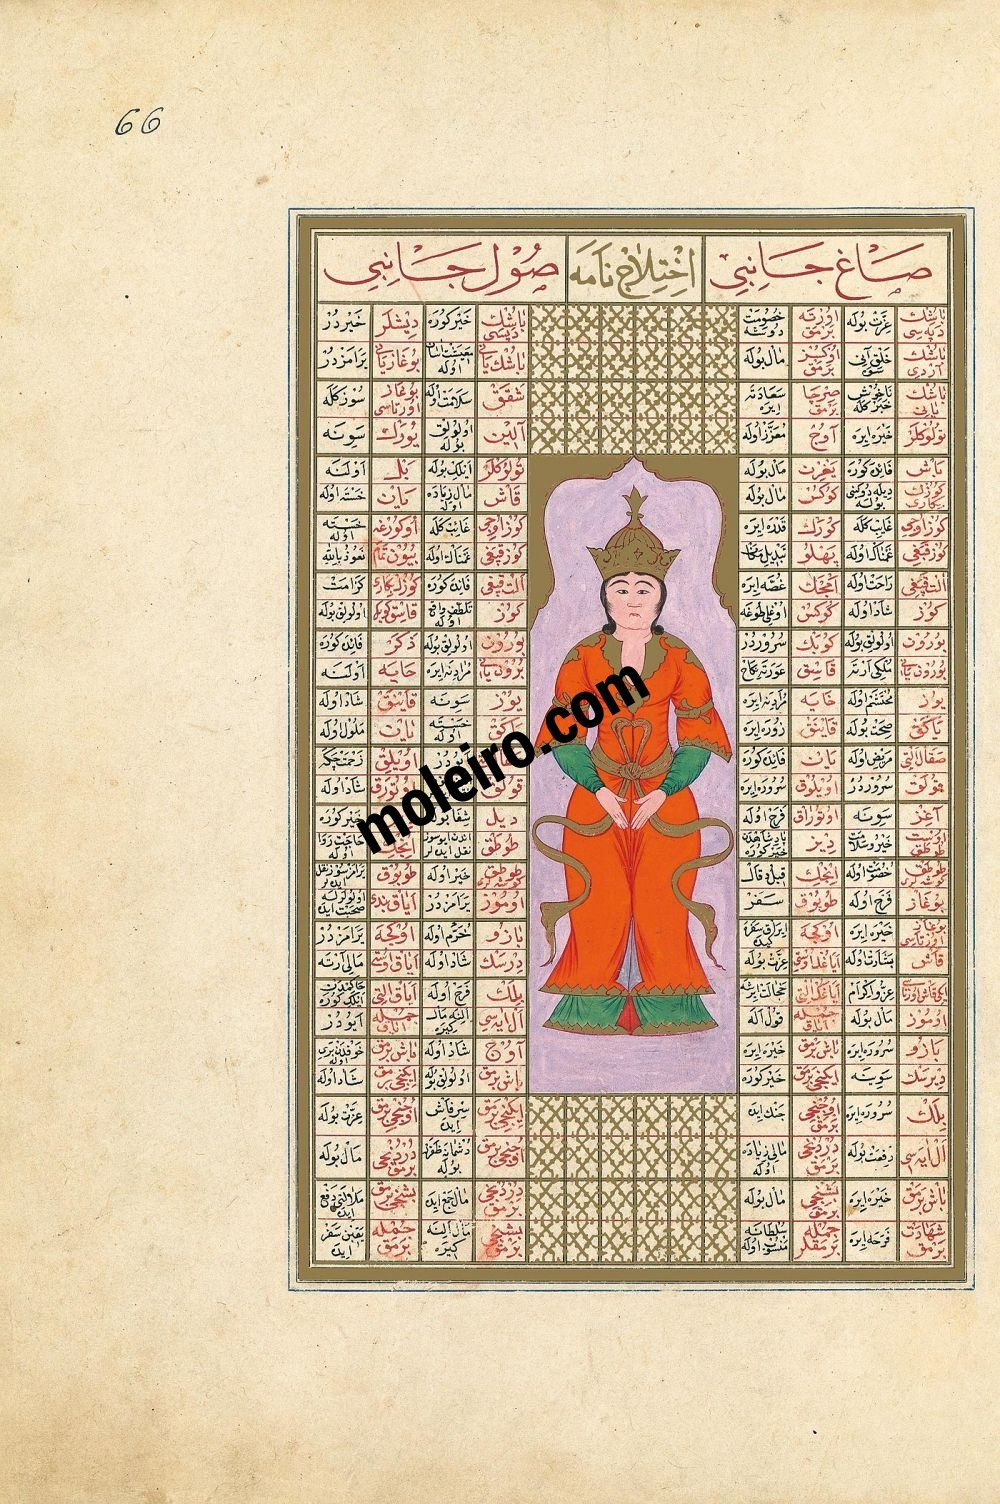 The Book of Felicity f. 66r, The Ikhtilajnama